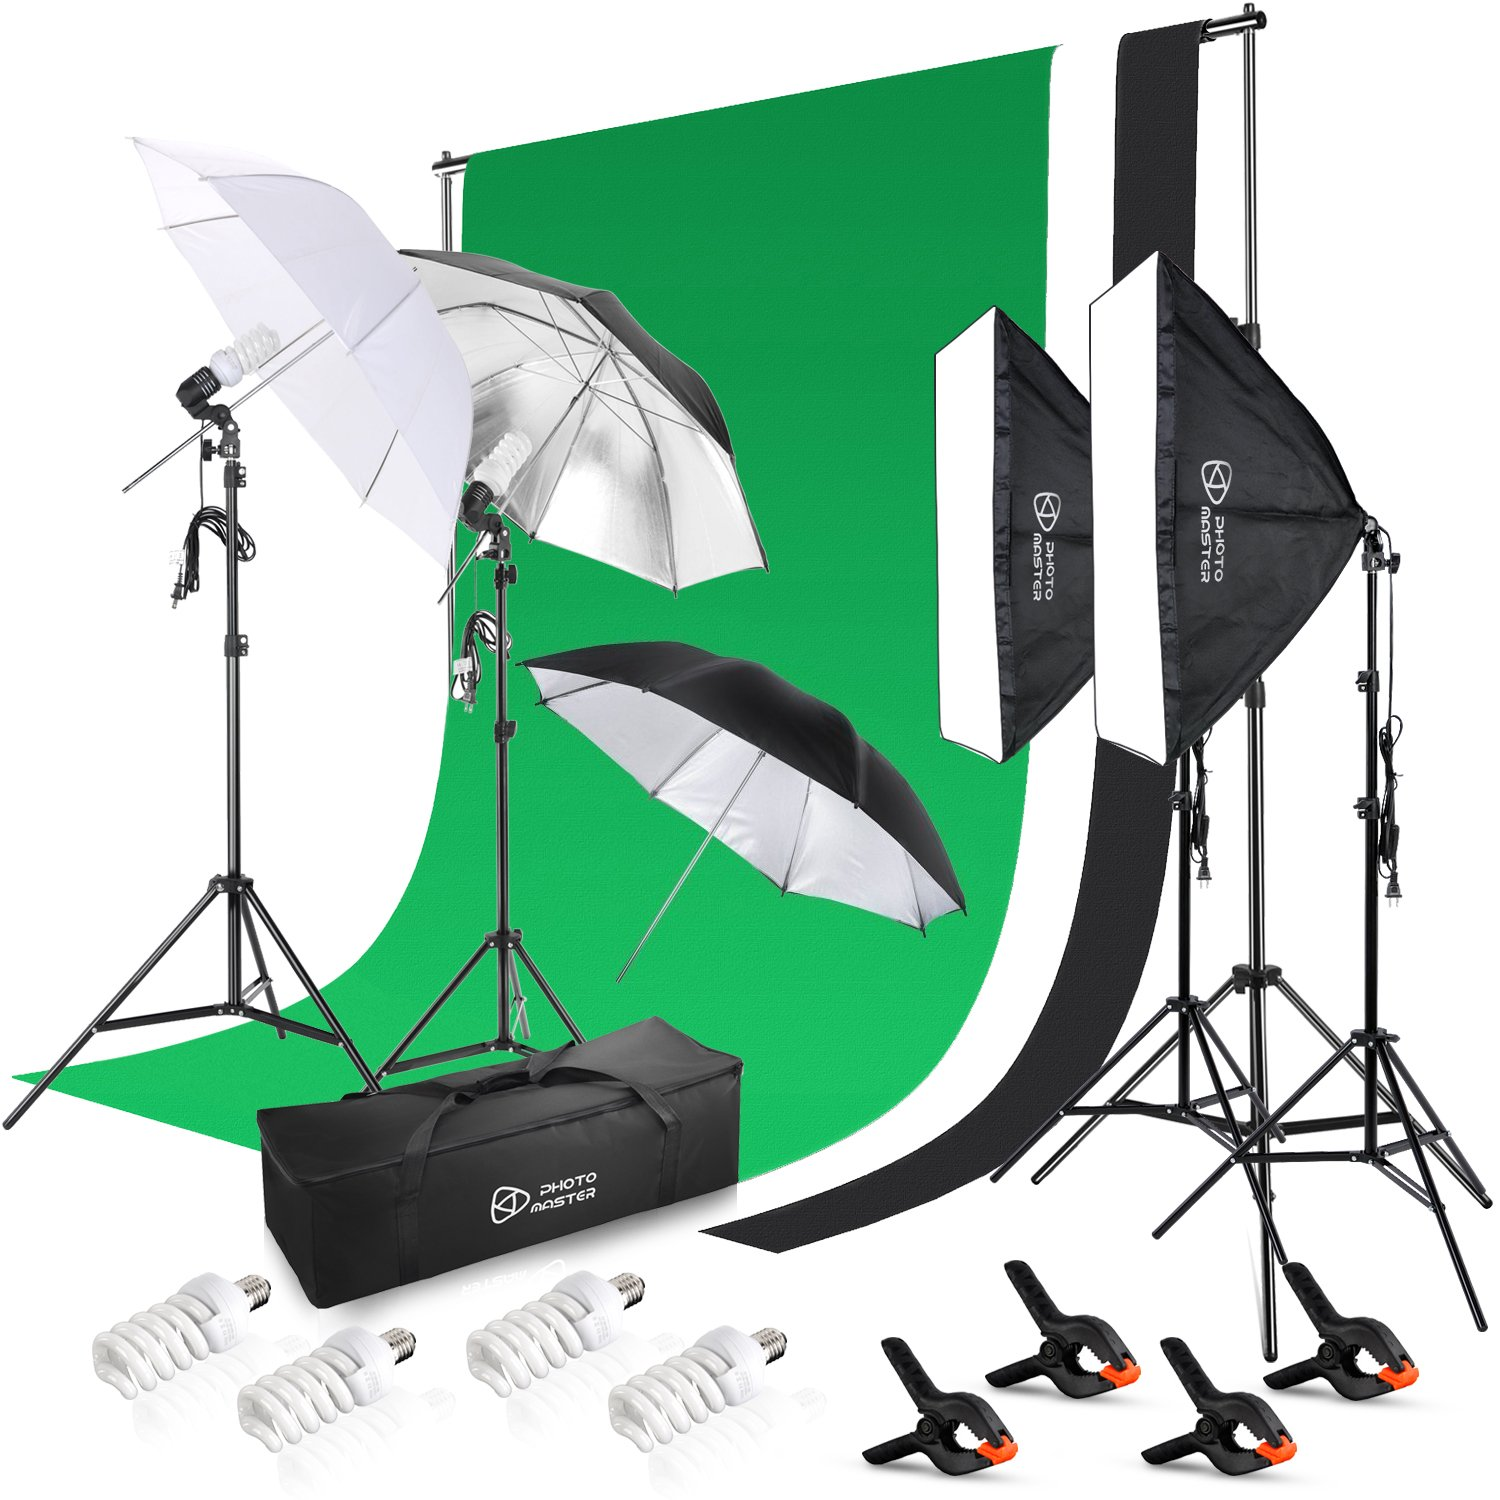 Photo Master Photography Continuous Lighting Umbrellas Kits for Product Portrait and Video Shoot - Included Background Support, 3 colors Backdrops, 3 x Umbrella Light Kit, 2x Softbox